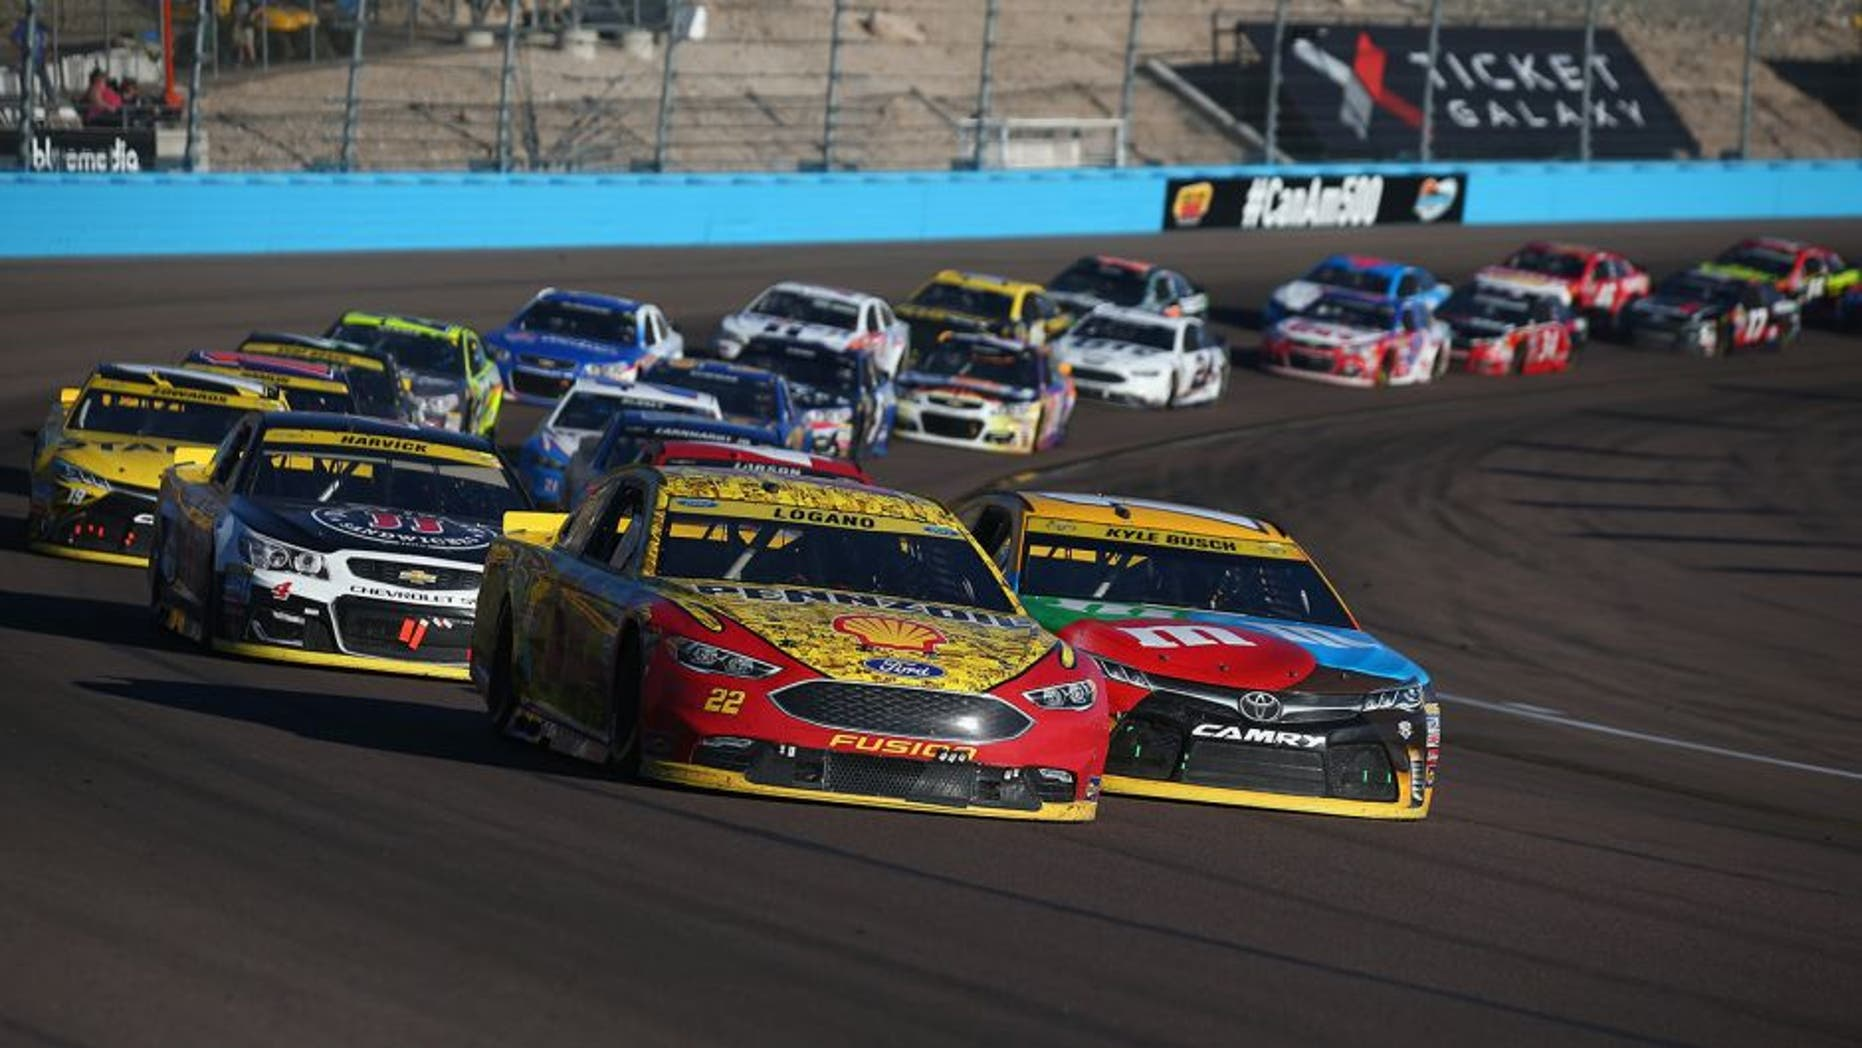 AVONDALE, AZ - NOVEMBER 13: Joey Logano, driver of the #22 Shell Pennzoil Ford, leads a restart during the NASCAR Sprint Cup Series Can-Am 500 at Phoenix International Raceway on November 13, 2016 in Avondale, Arizona. (Photo by Sarah Crabill/Getty Images)